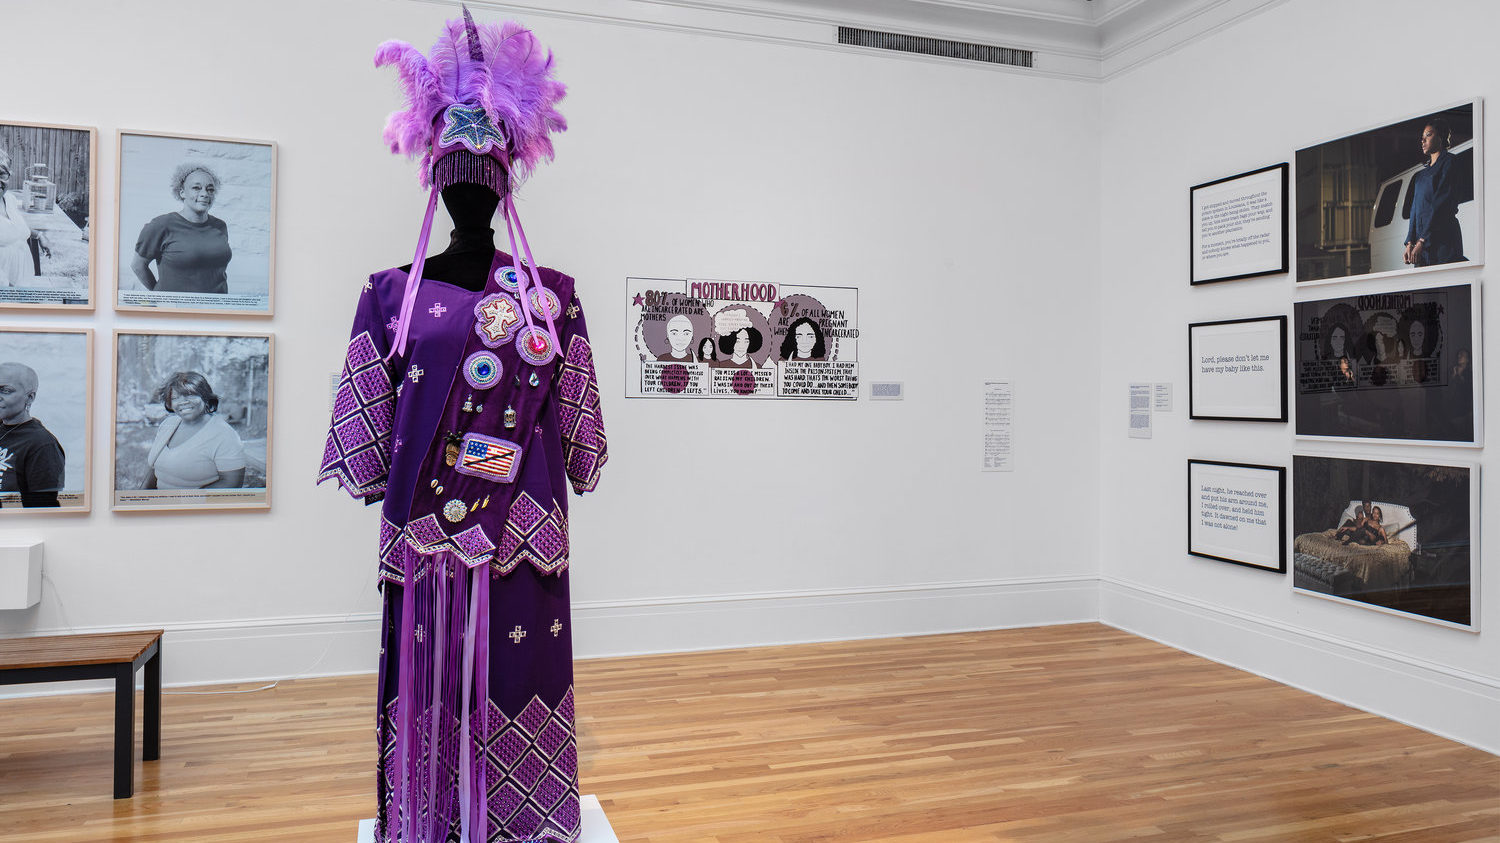 Artworks in a museum gallery, including photographed portraits and a purple dress and feathered headpiece on a mannequin